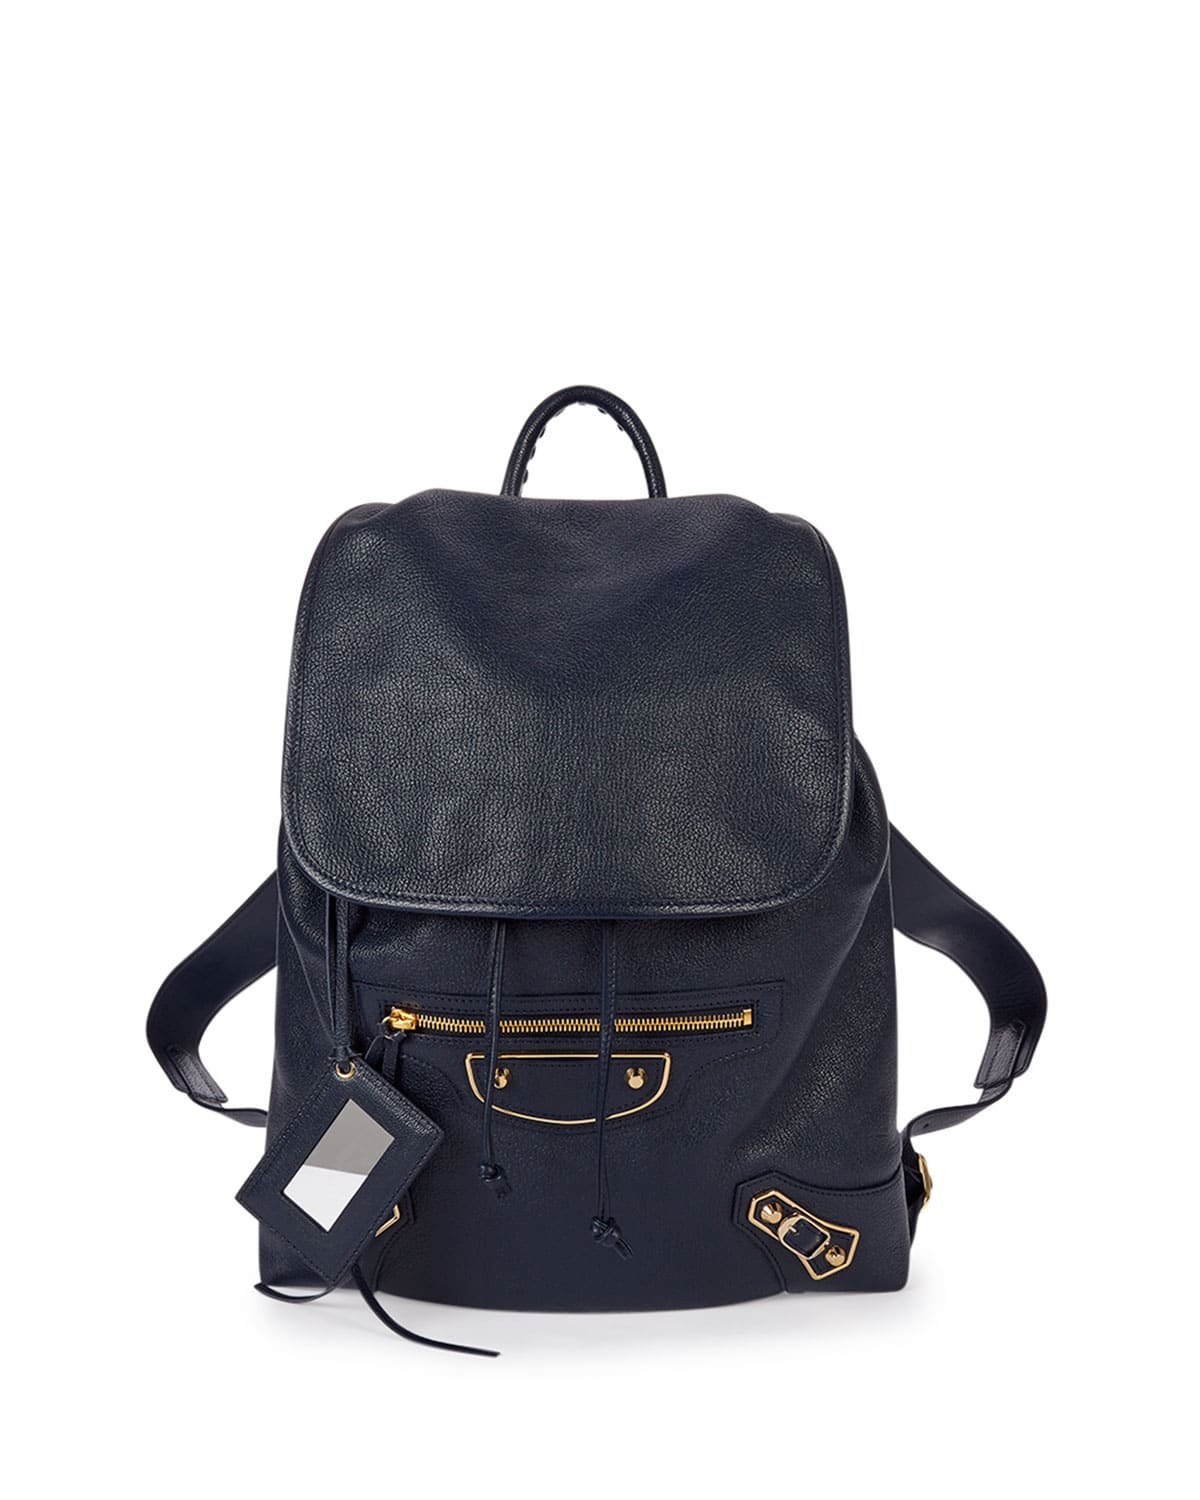 Cheap fashion backpacks uk 27